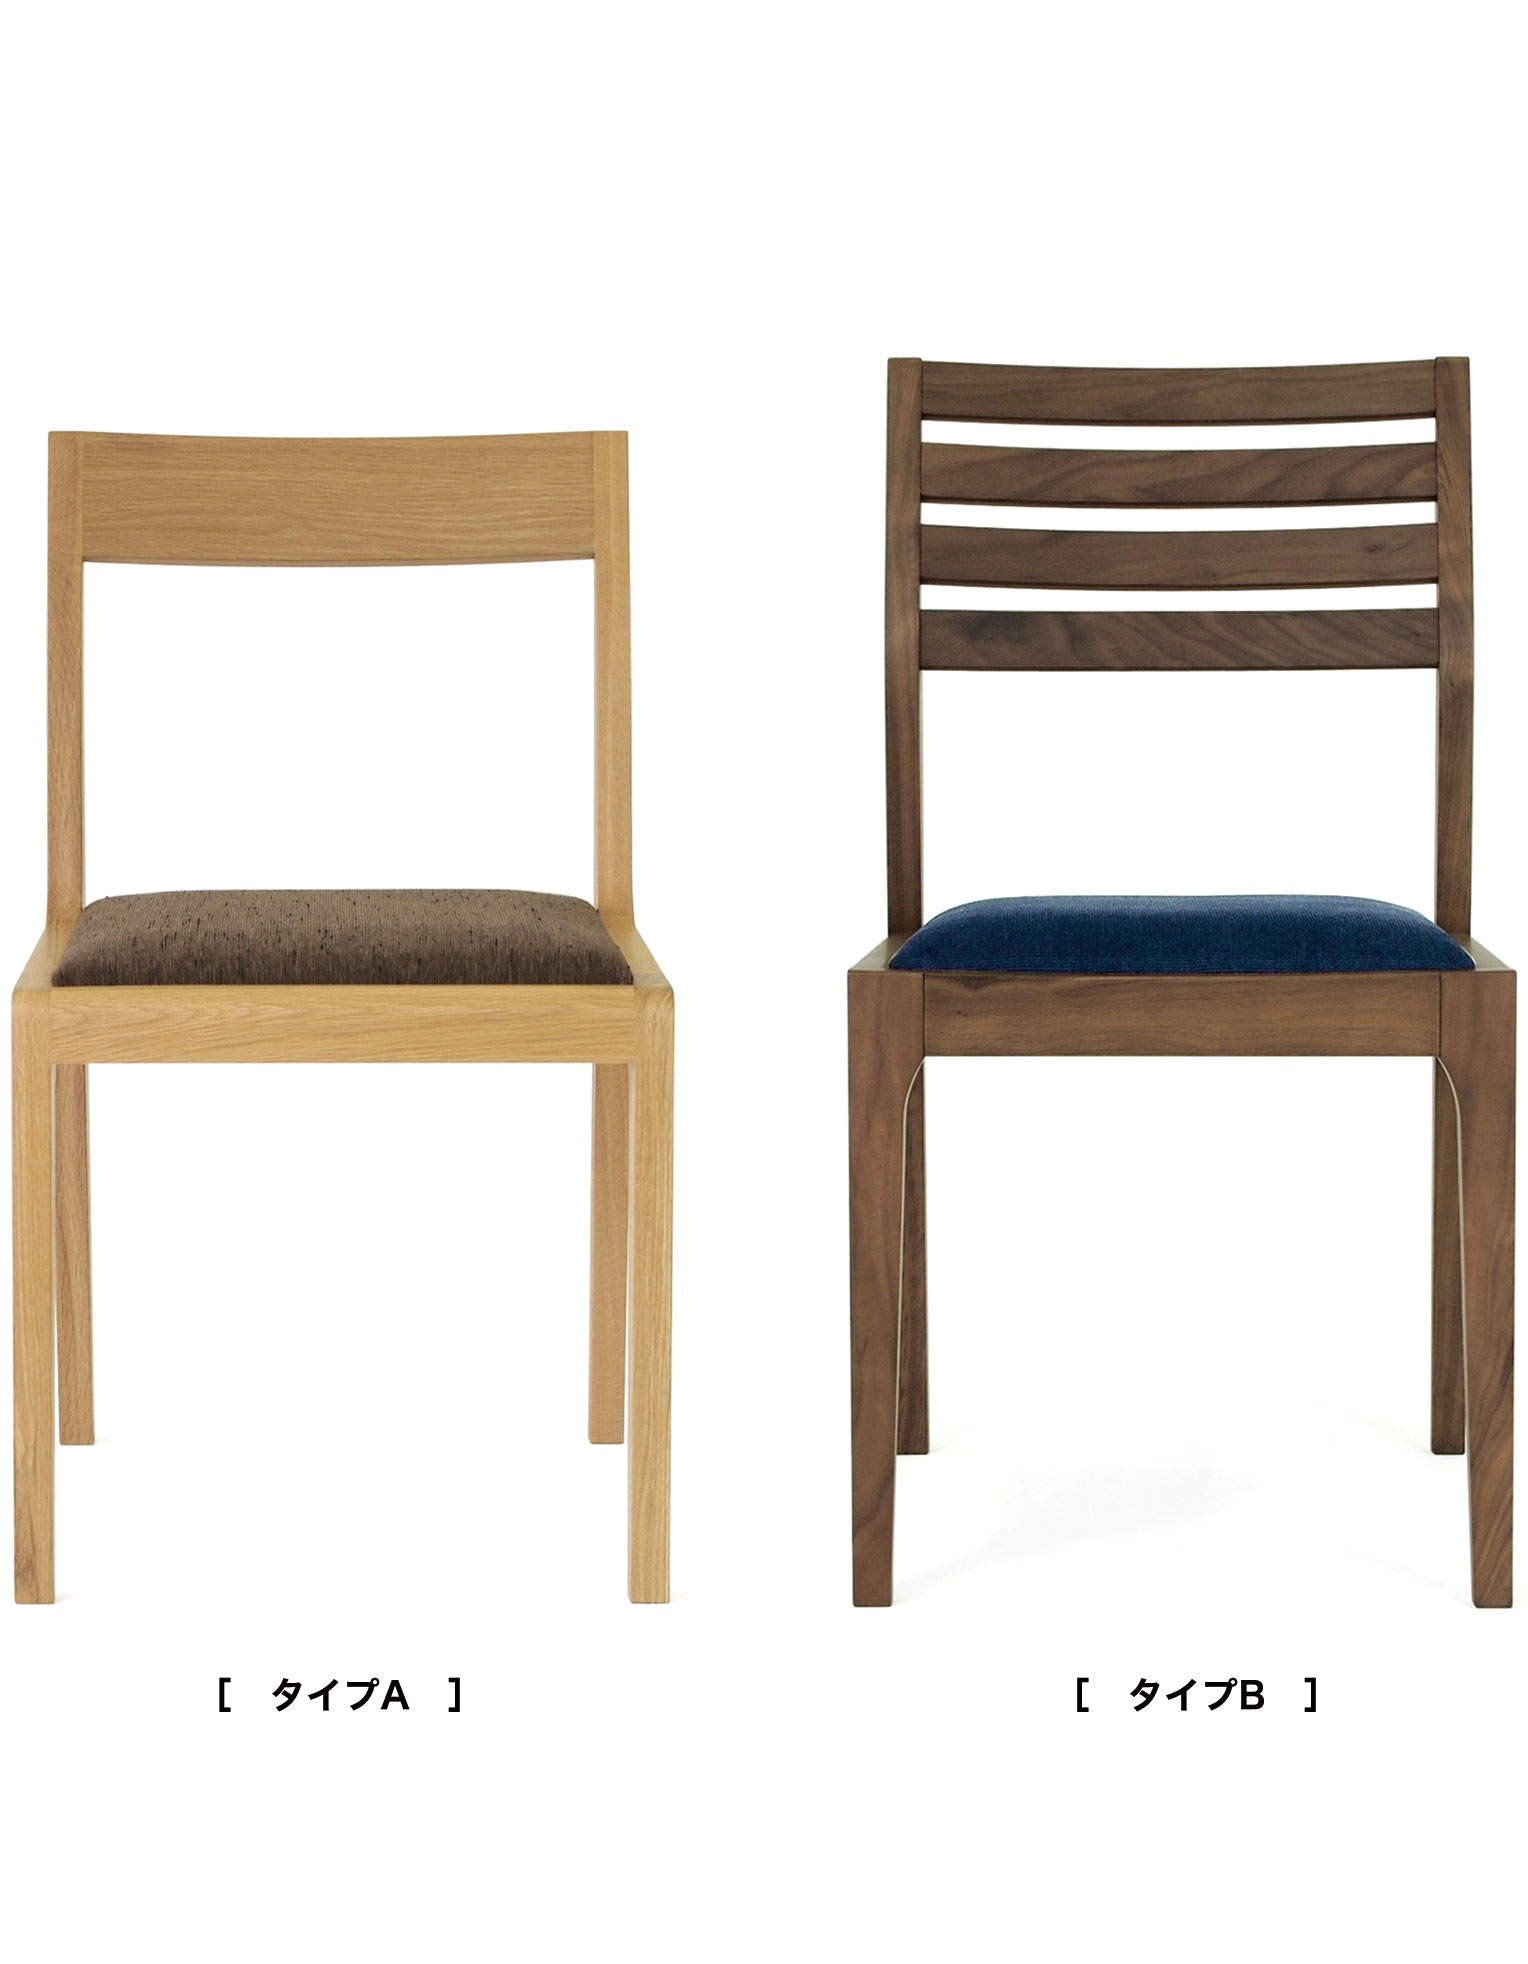 CORNET DINING CHAIR(コルネット ダイニングチェアー)